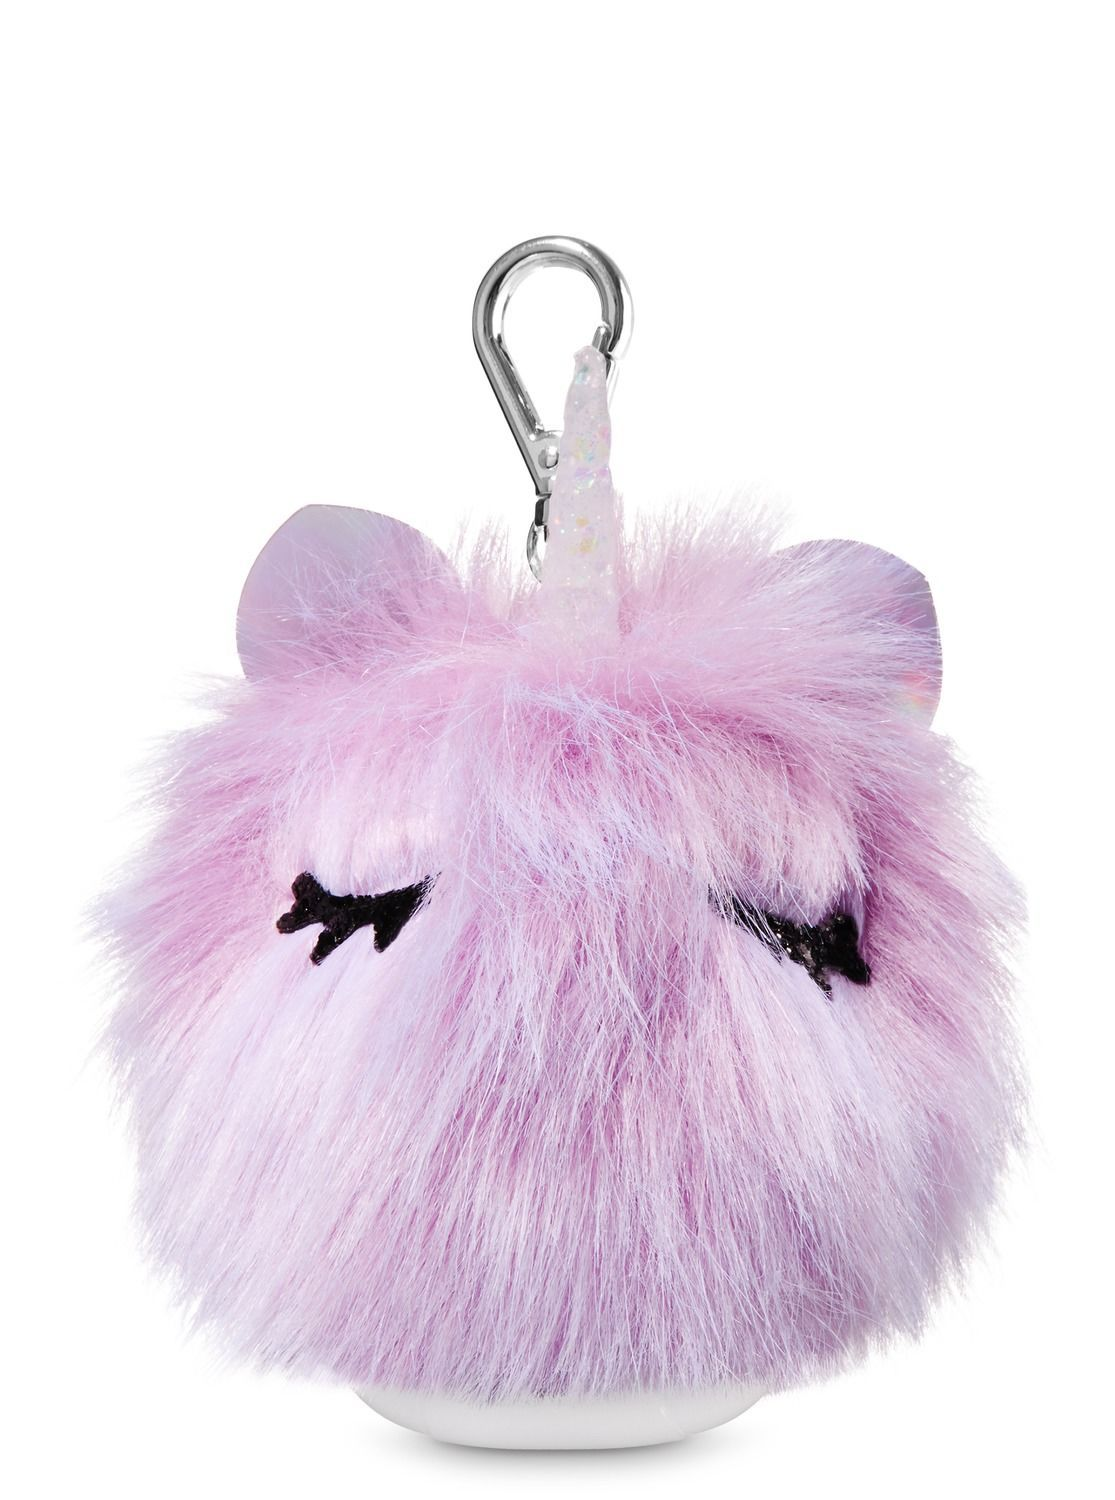 Unicorn Pocketbac Holder By Bath Body Works Unicorn Bath And